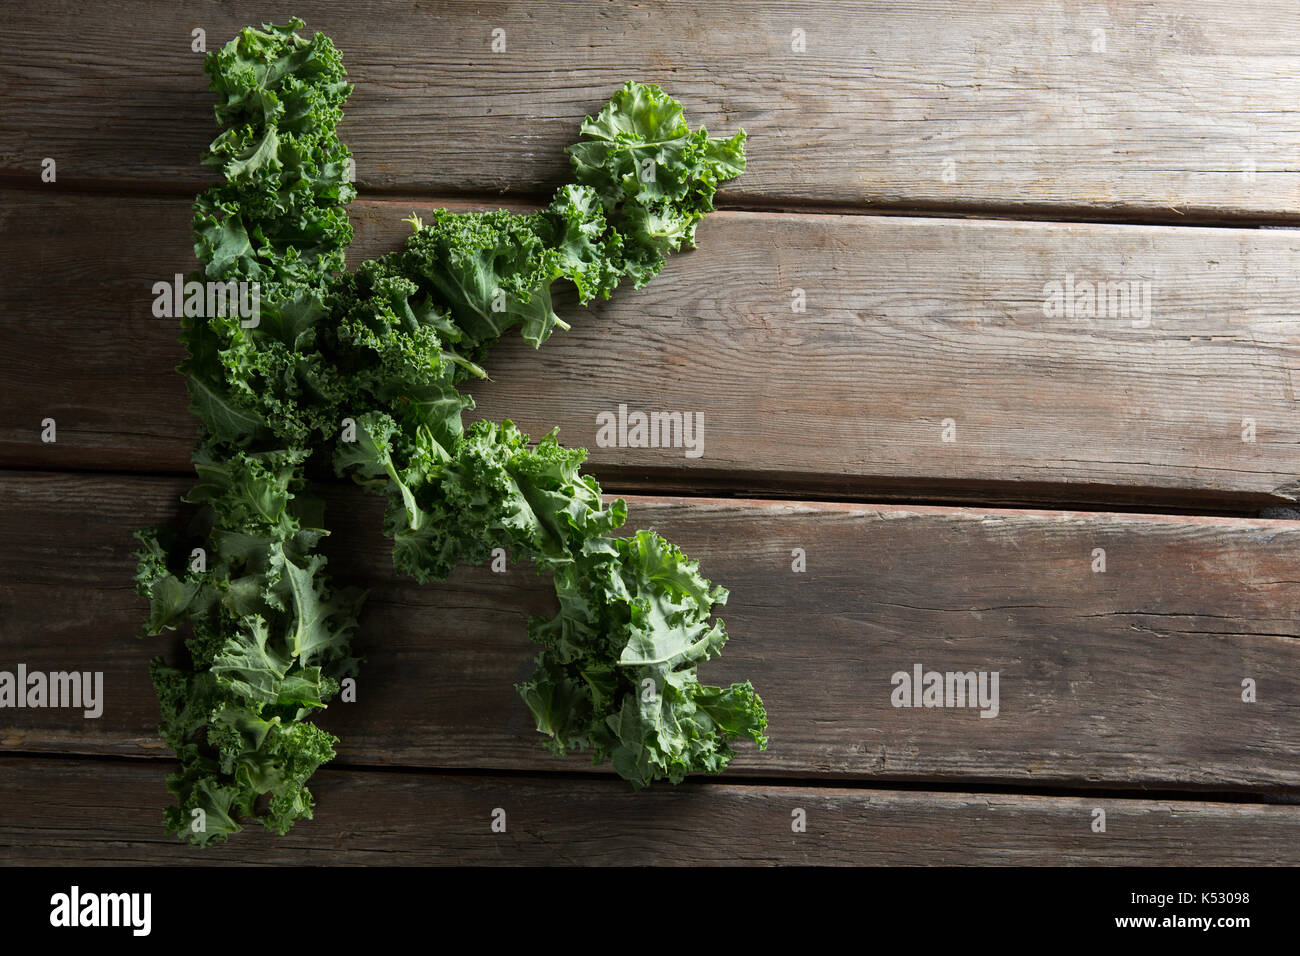 Overhead view of letter K made with kale leaves on wooden table - Stock Image